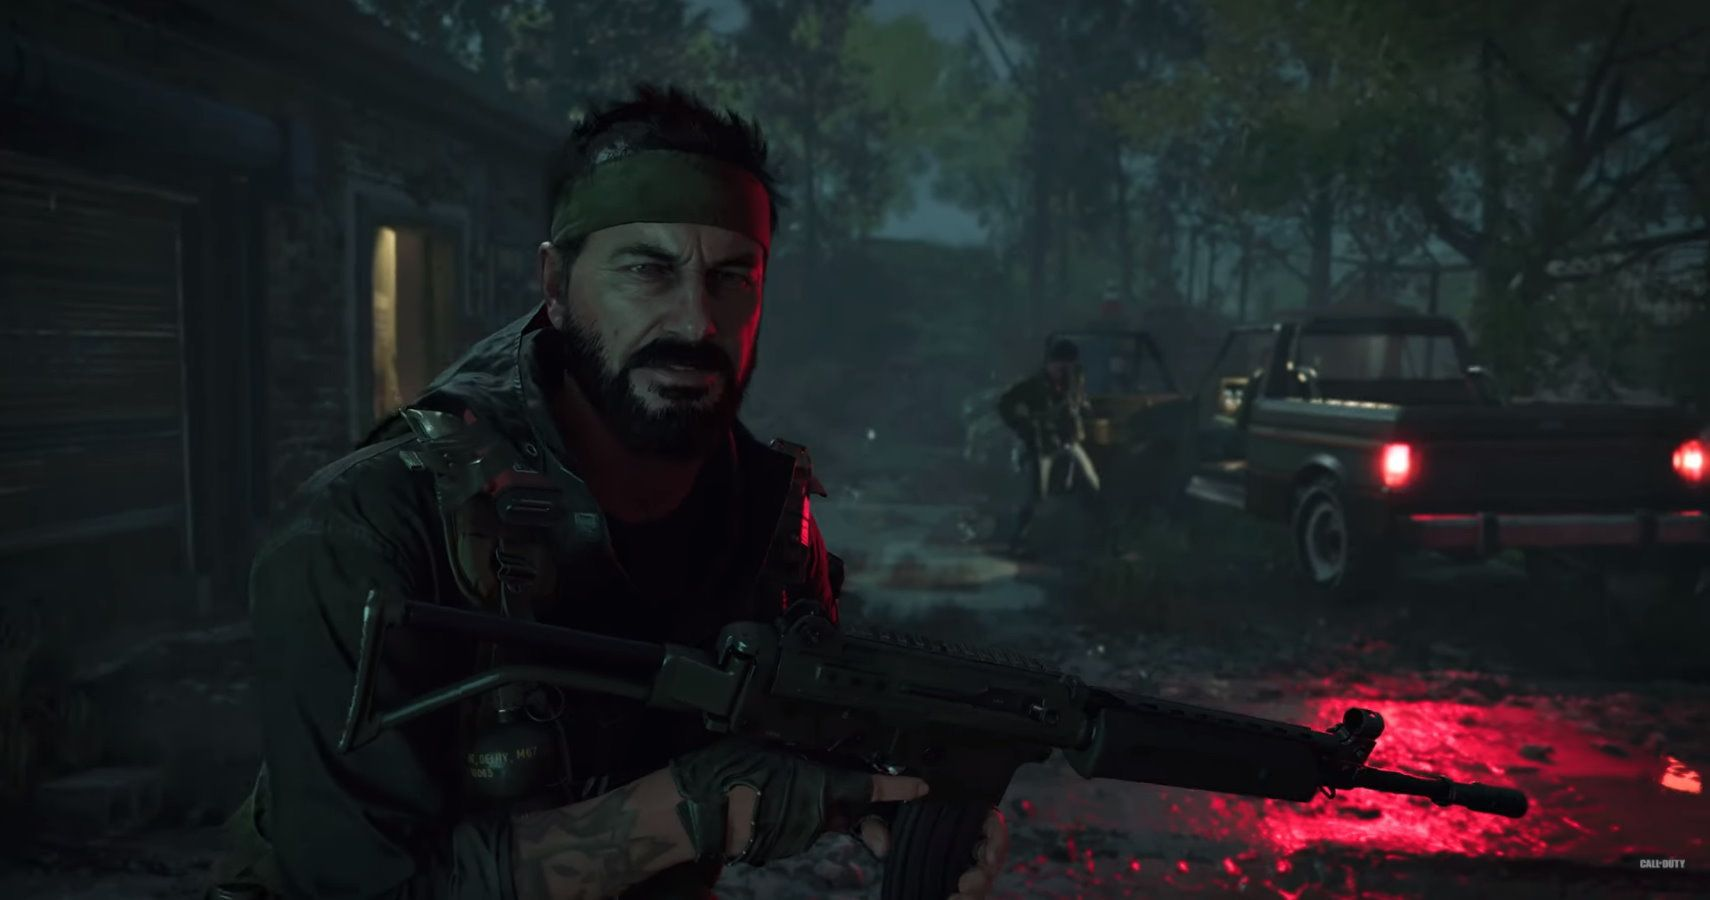 Black Ops Cold War Campaign Showcased In New Trailer During PS5 Showcase